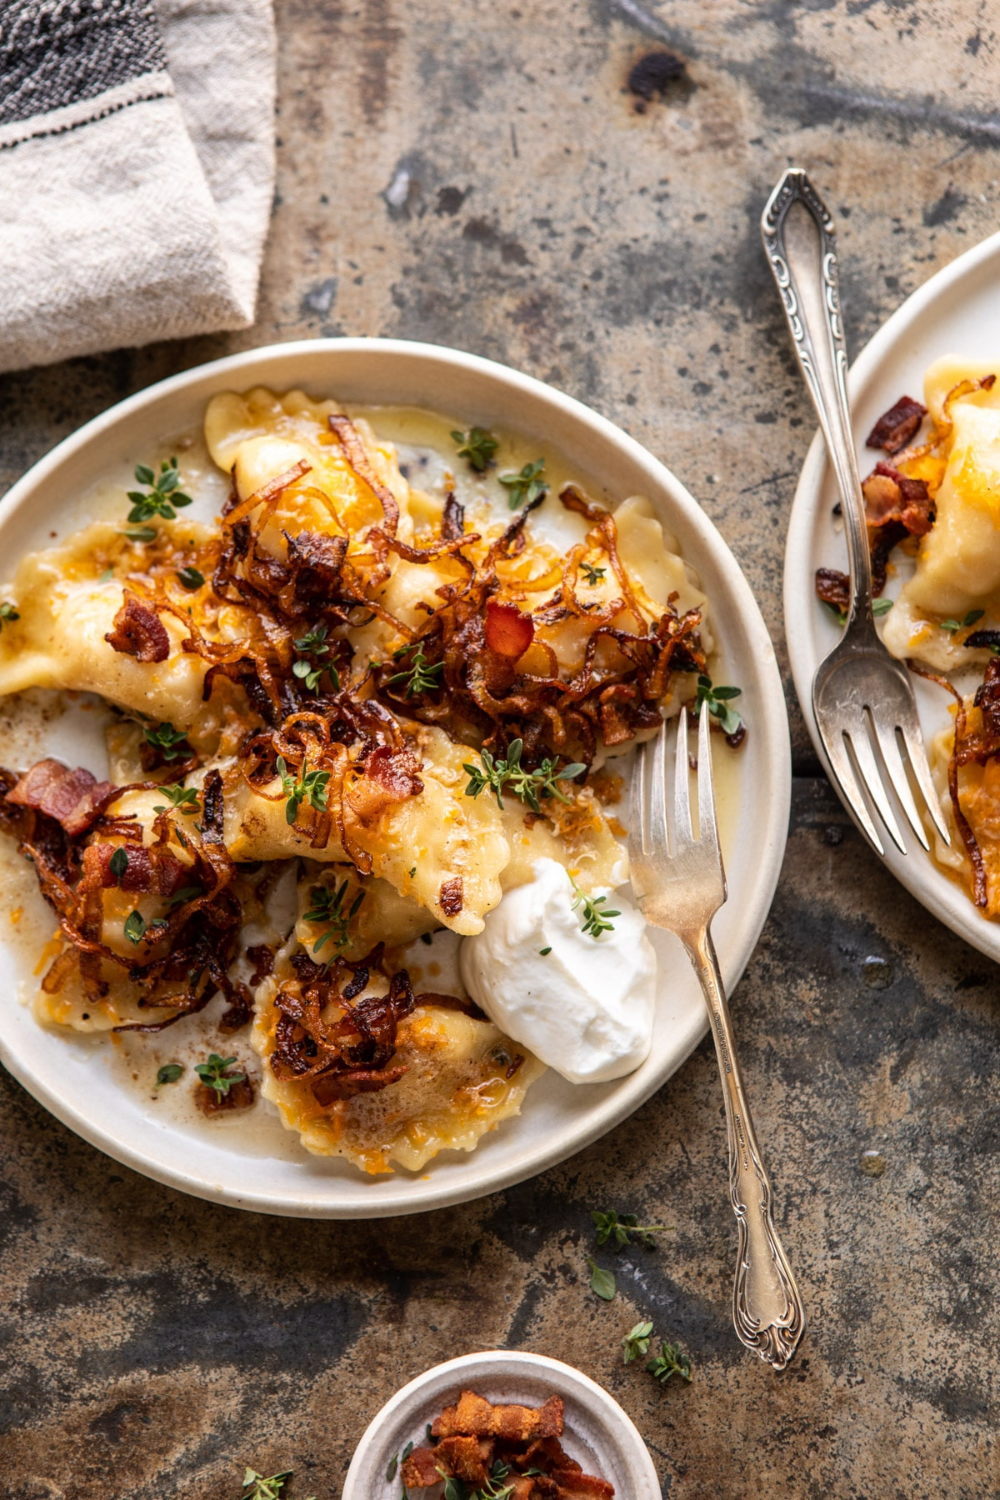 Cheddar Pierogies with Caramelized Onions and Baco